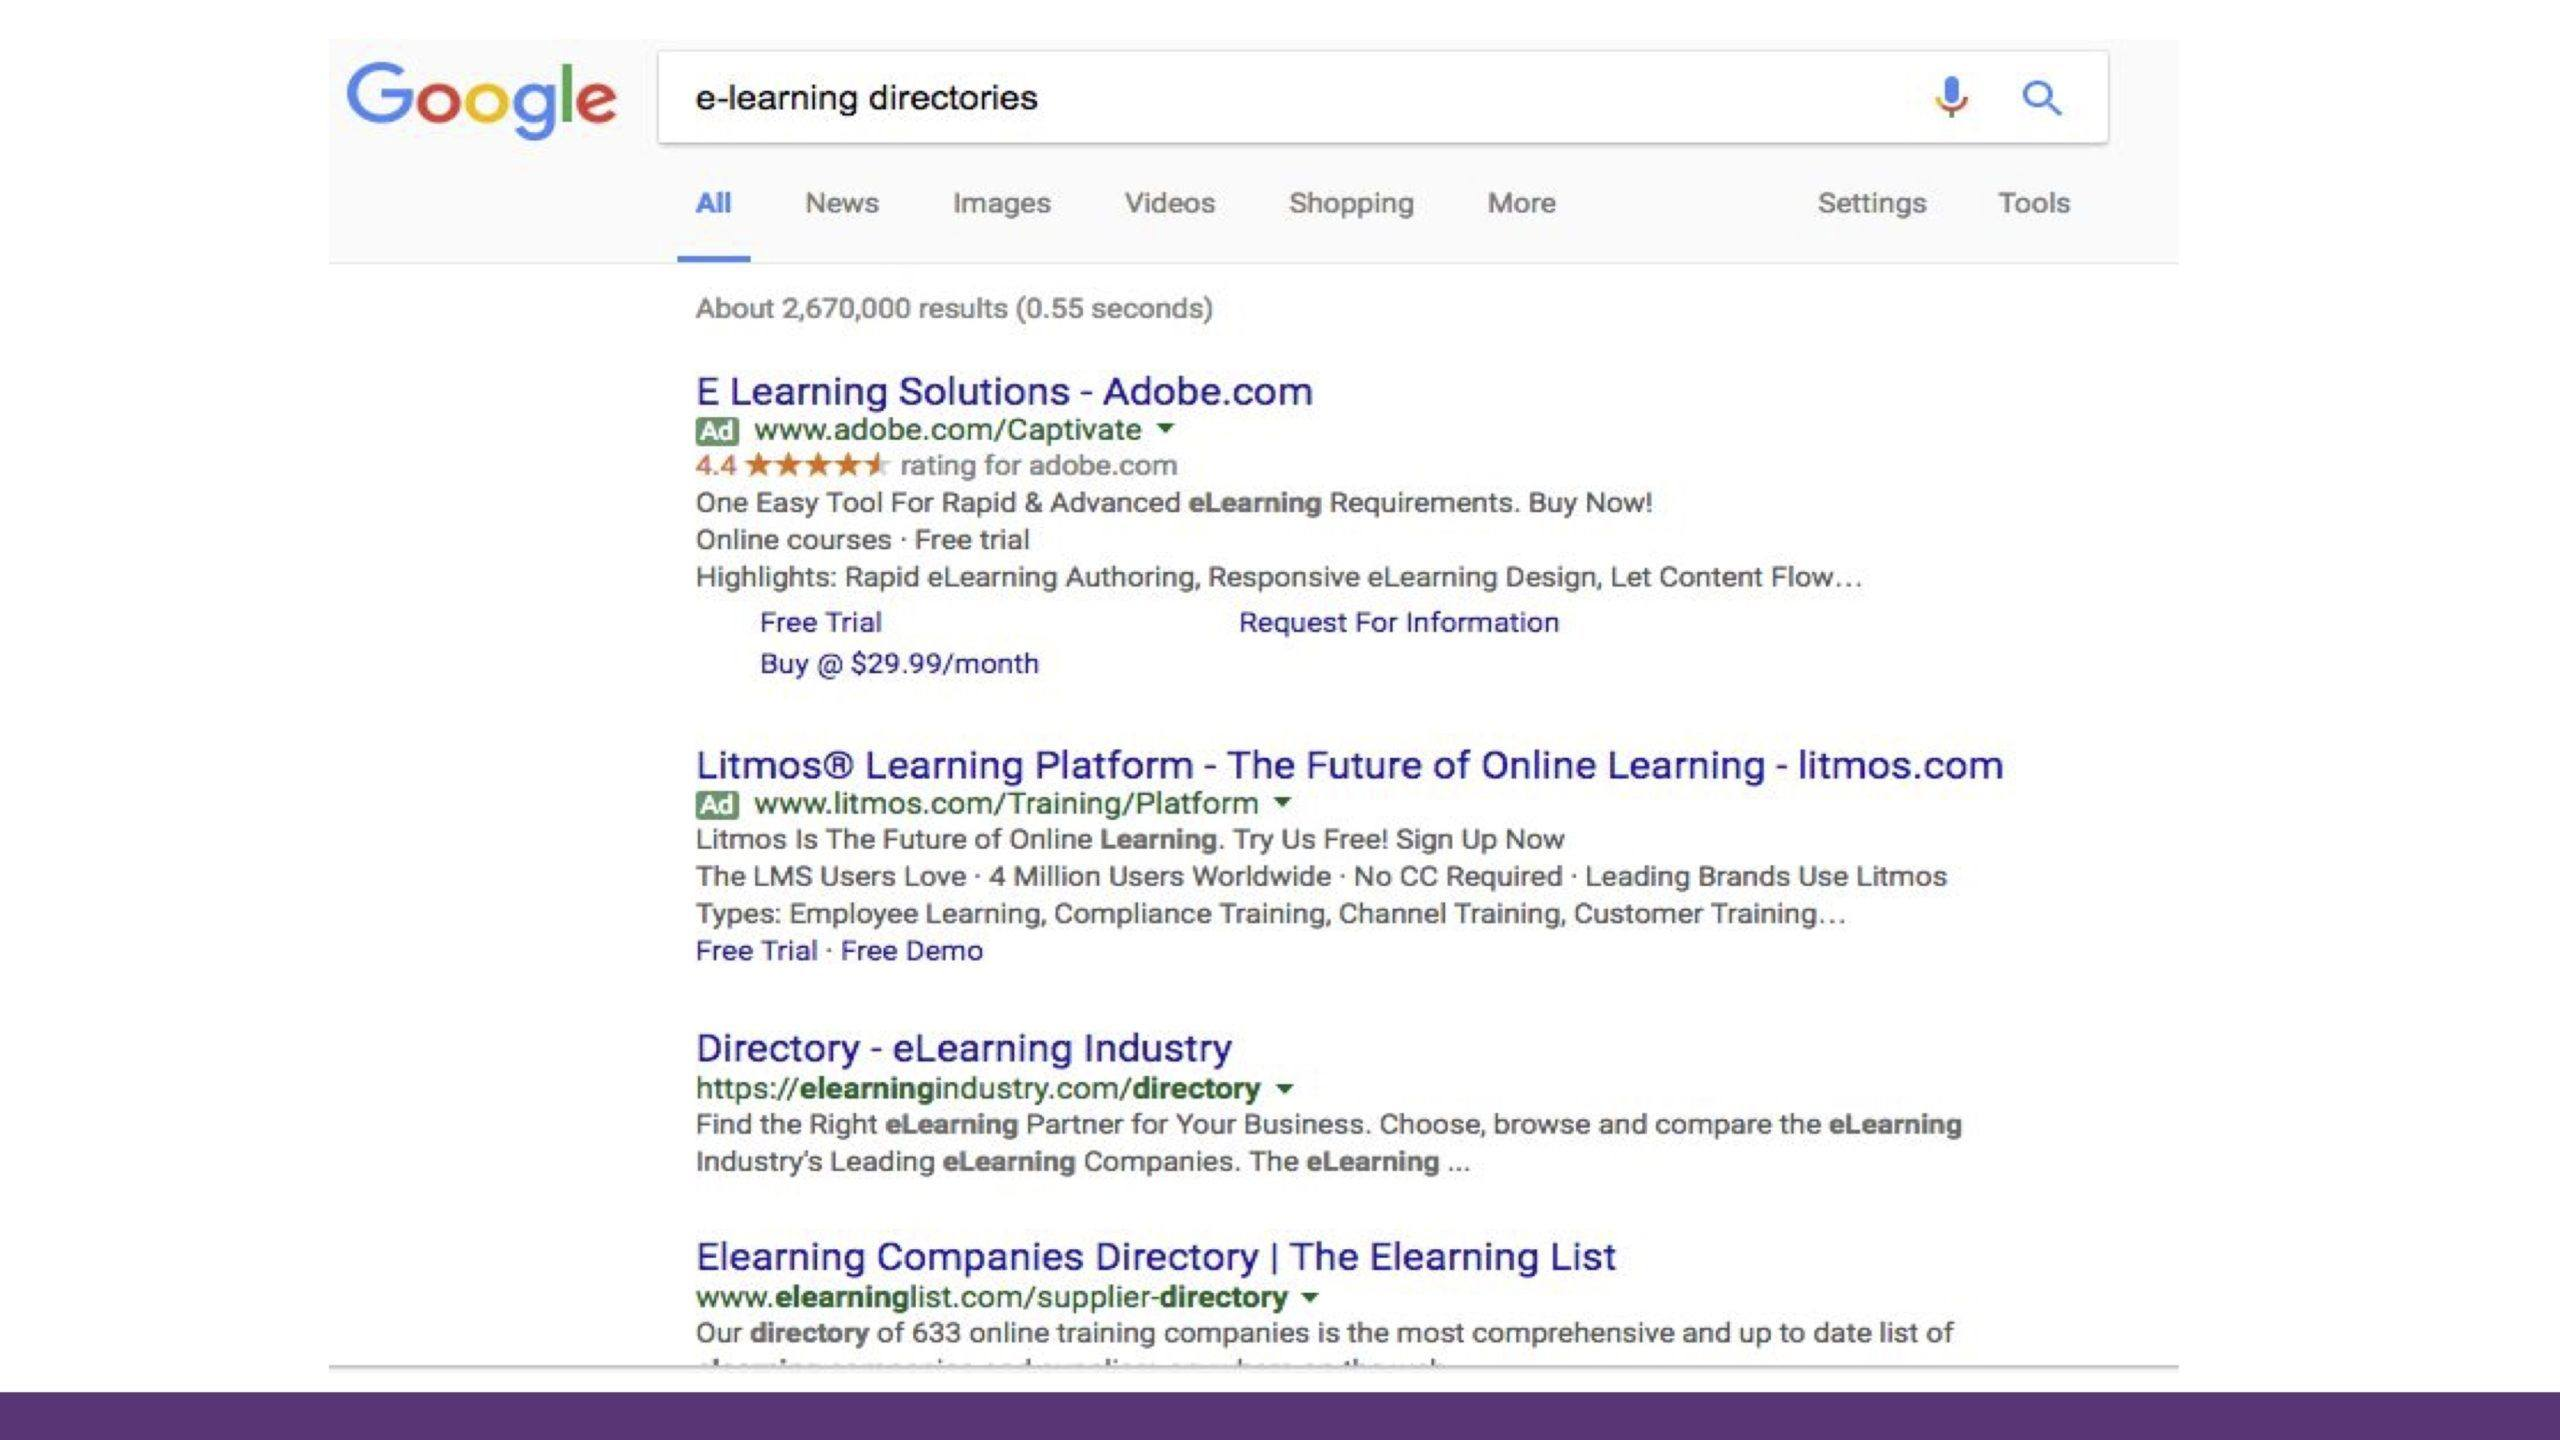 Elearning directories